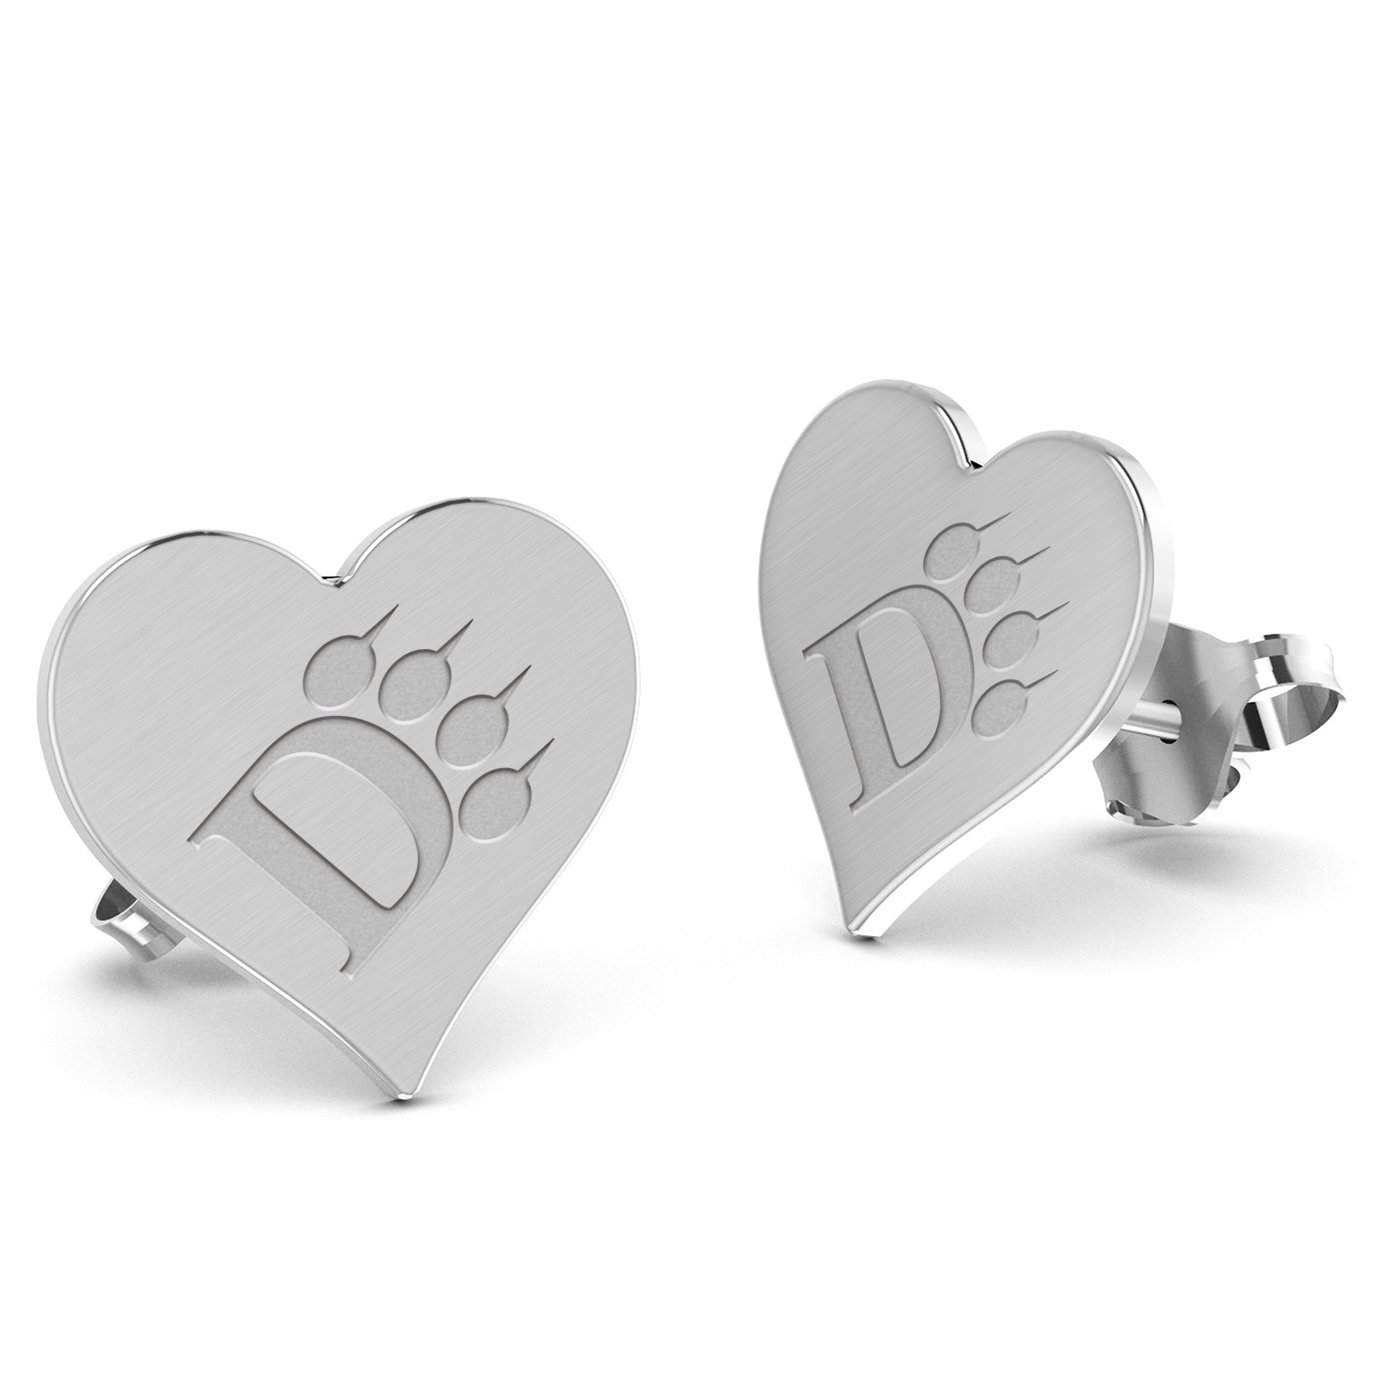 Ohio Dominican University Panthers Heart Stud Earring See Image on Model for Size Reference